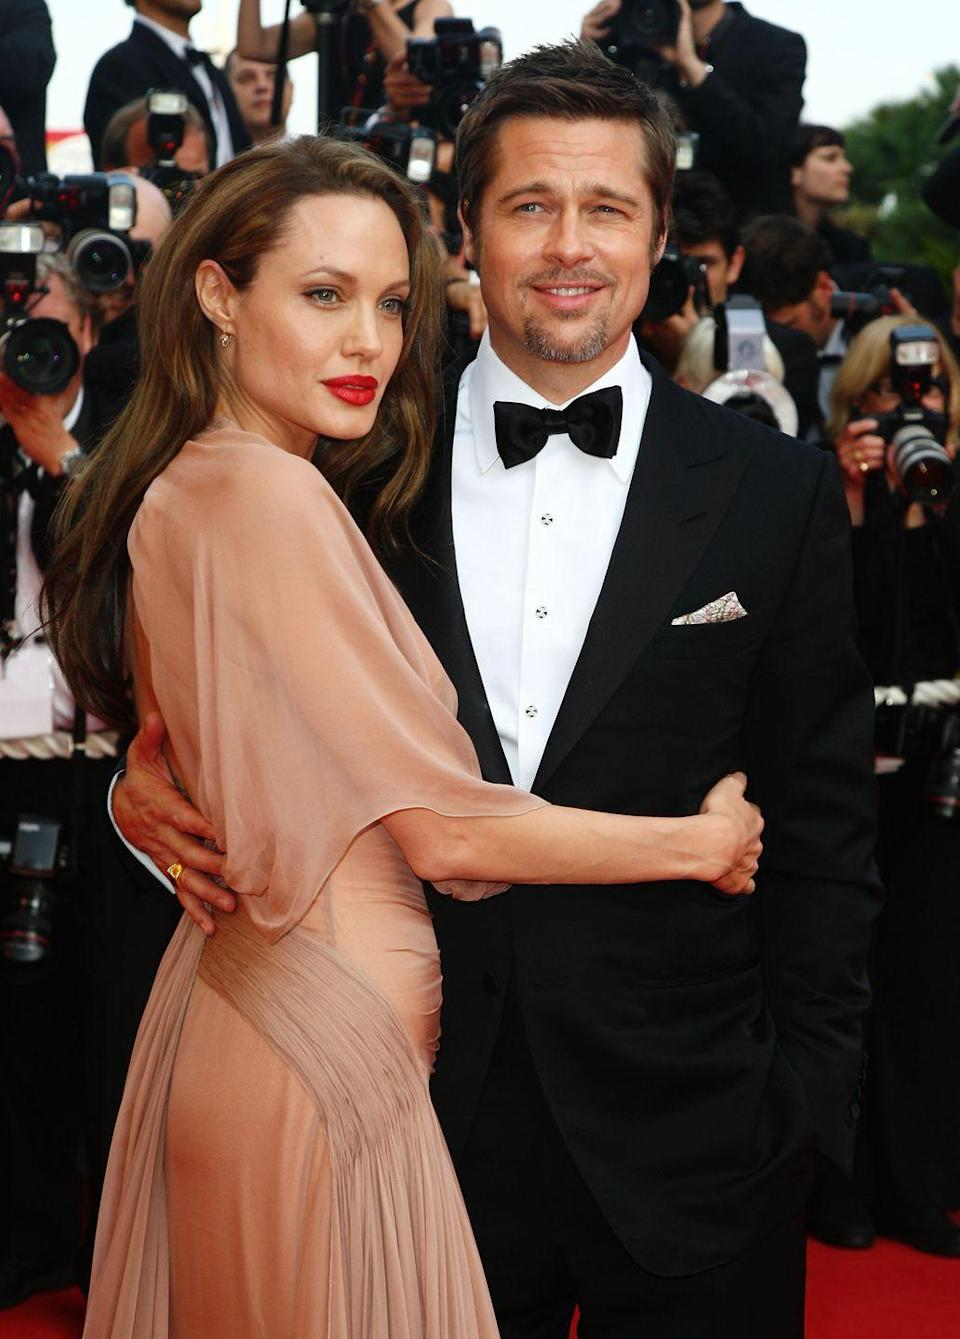 "<p>In the early 2000s, people idolized the relationship between Jennifer Aniston and Brad Pitt. So Brad ~devastated~ them when he left the <em>Friends </em>star for Angelina Jolie in 2005. The tabloids endlessly reported on the details of the split and Brad's new relationship. Even now, after Brangelina divorced, <a href=""https://www.etonline.com/jennifer-aniston-and-brad-pitt-have-laughed-about-the-publics-freakout-over-their-reunion-140032"" rel=""nofollow noopener"" target=""_blank"" data-ylk=""slk:fans are holding out hope"" class=""link rapid-noclick-resp"">fans are holding out hope</a> for a Jen and Brad reunion.</p>"